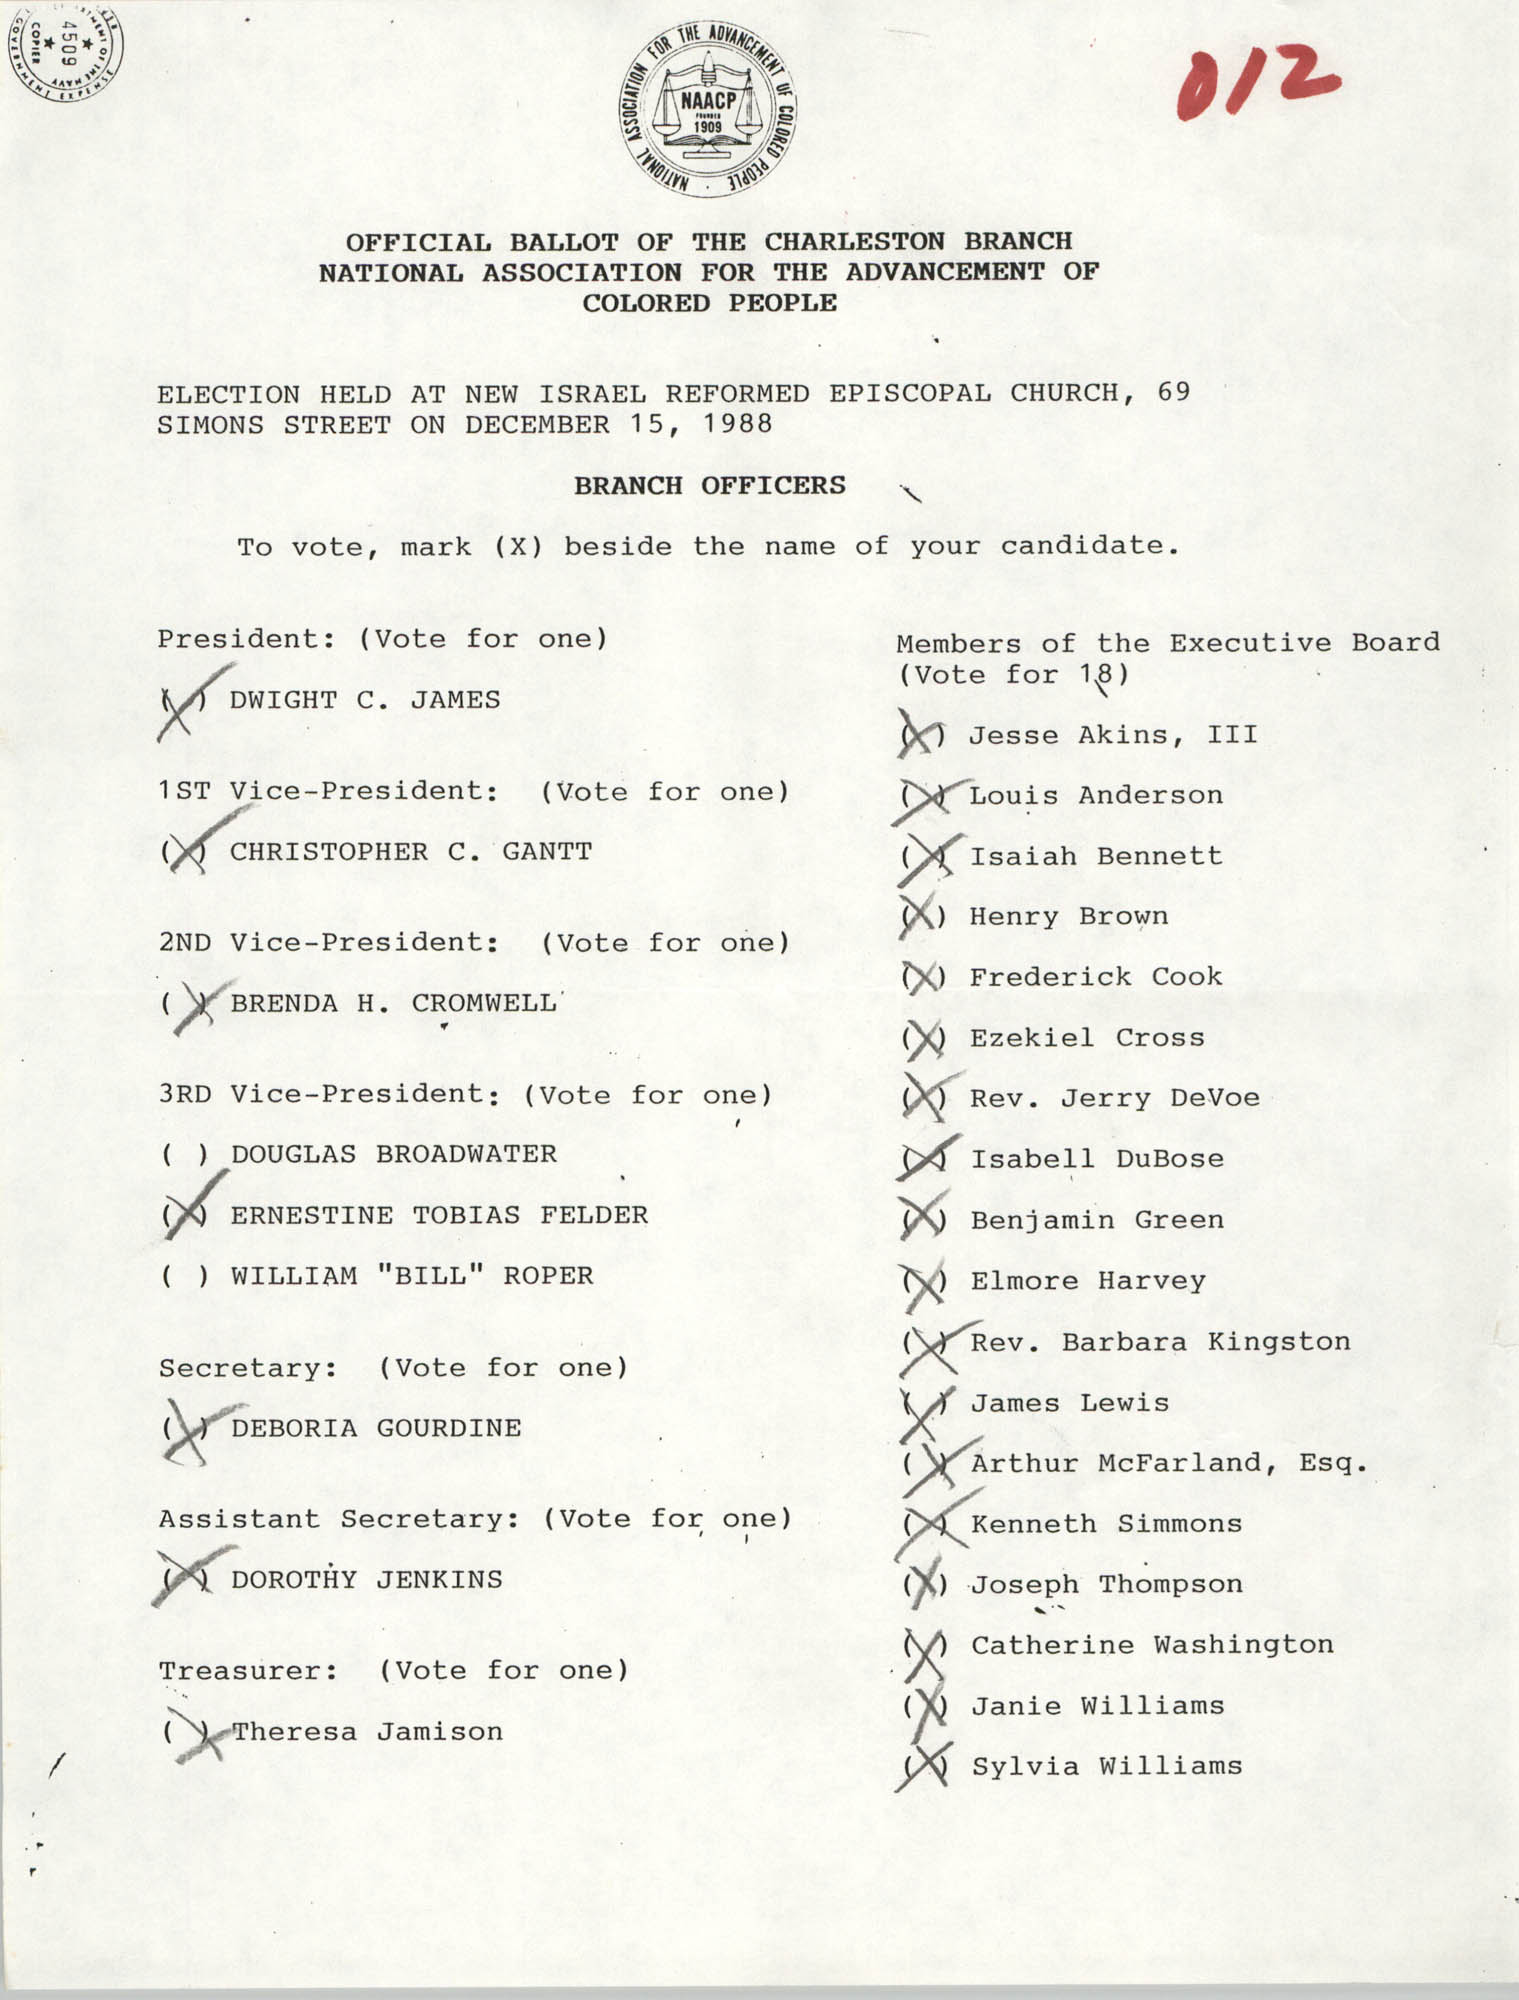 Official Ballot of the Charleston Branch of the NAACP, 012